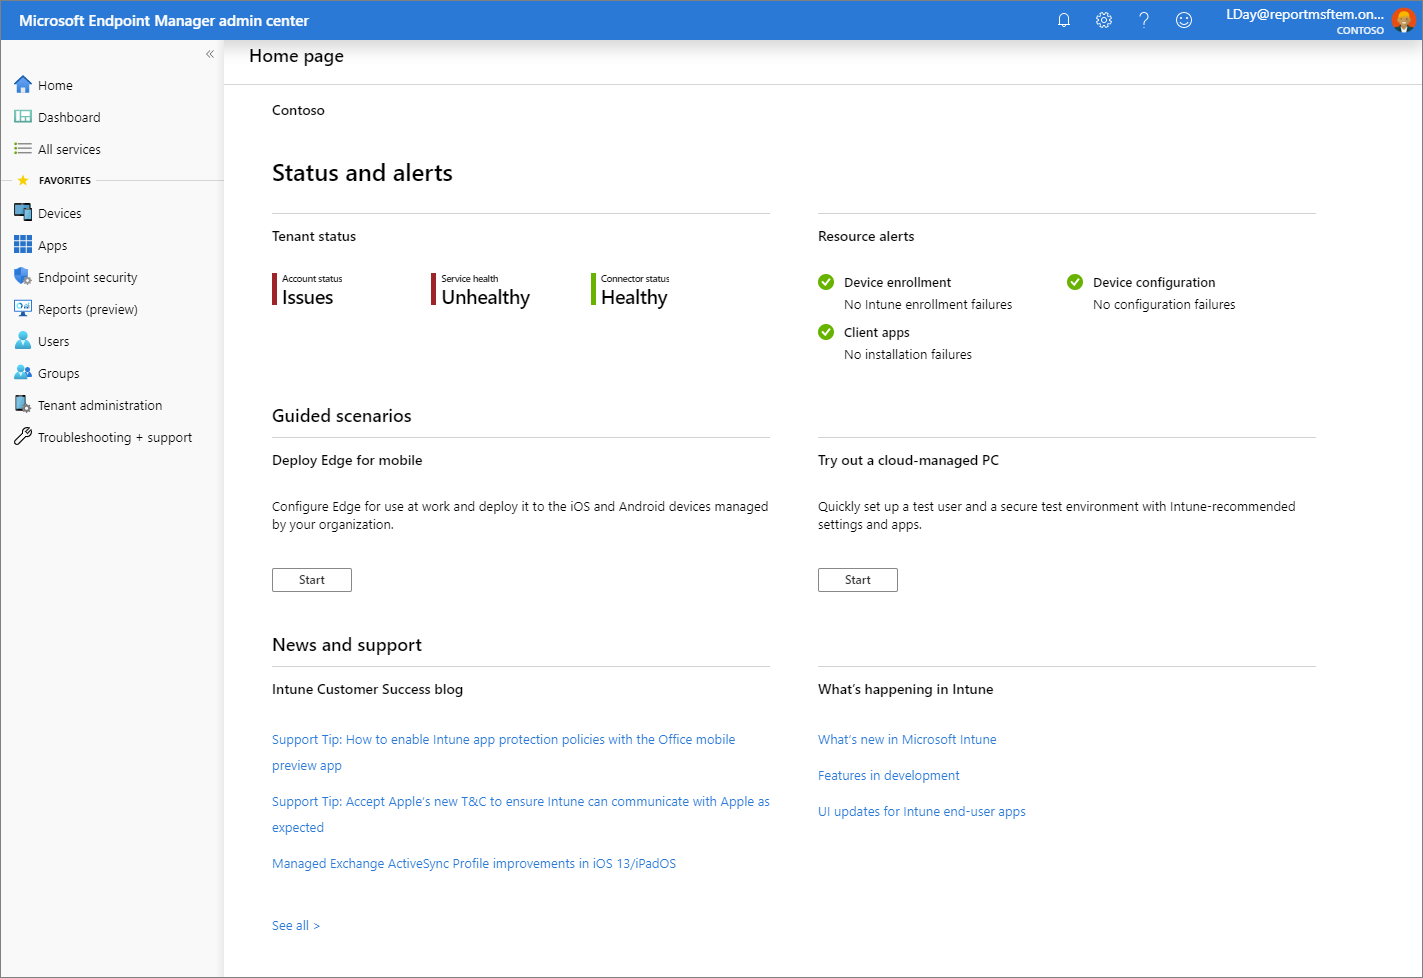 Screenshot of the Microsoft Endpoint Manager admin center - Home page